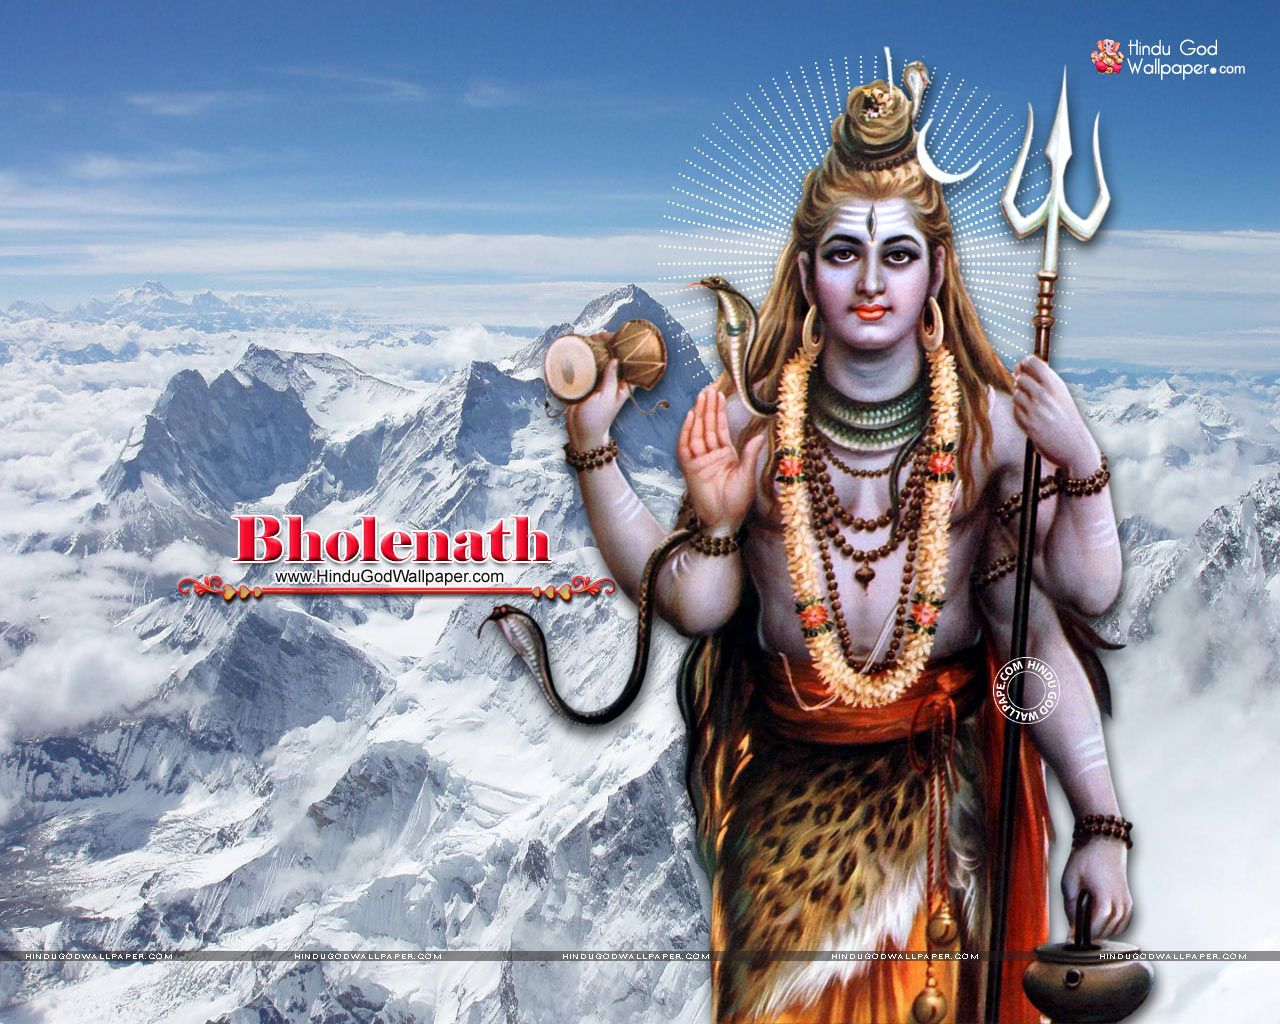 Bholenath HD Wallpapers, Images, Photos Free Download